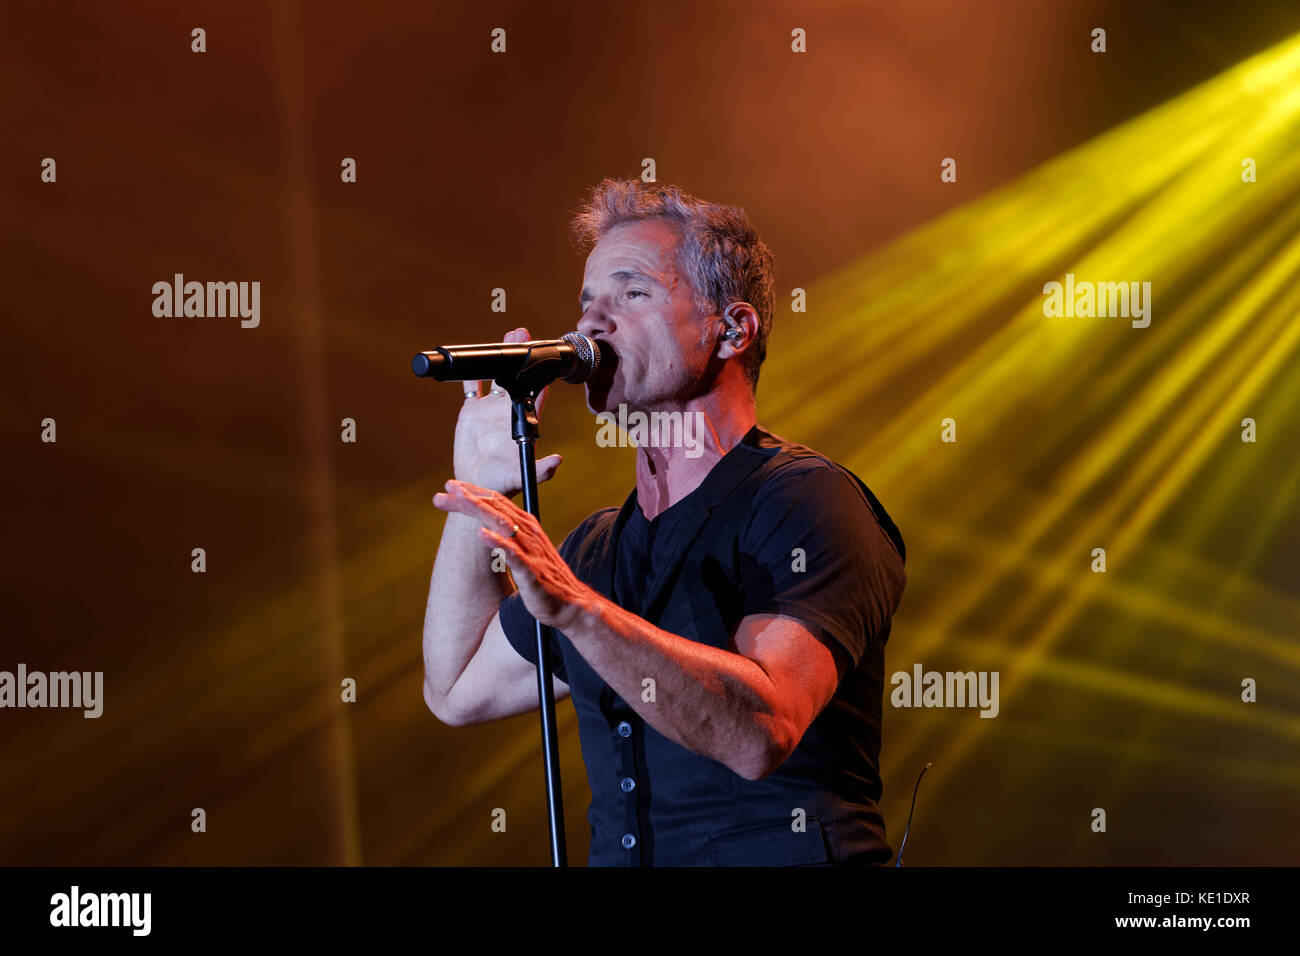 Quebec,Canada. Bruno Pelletier performs on stage in Montreal - Stock Image